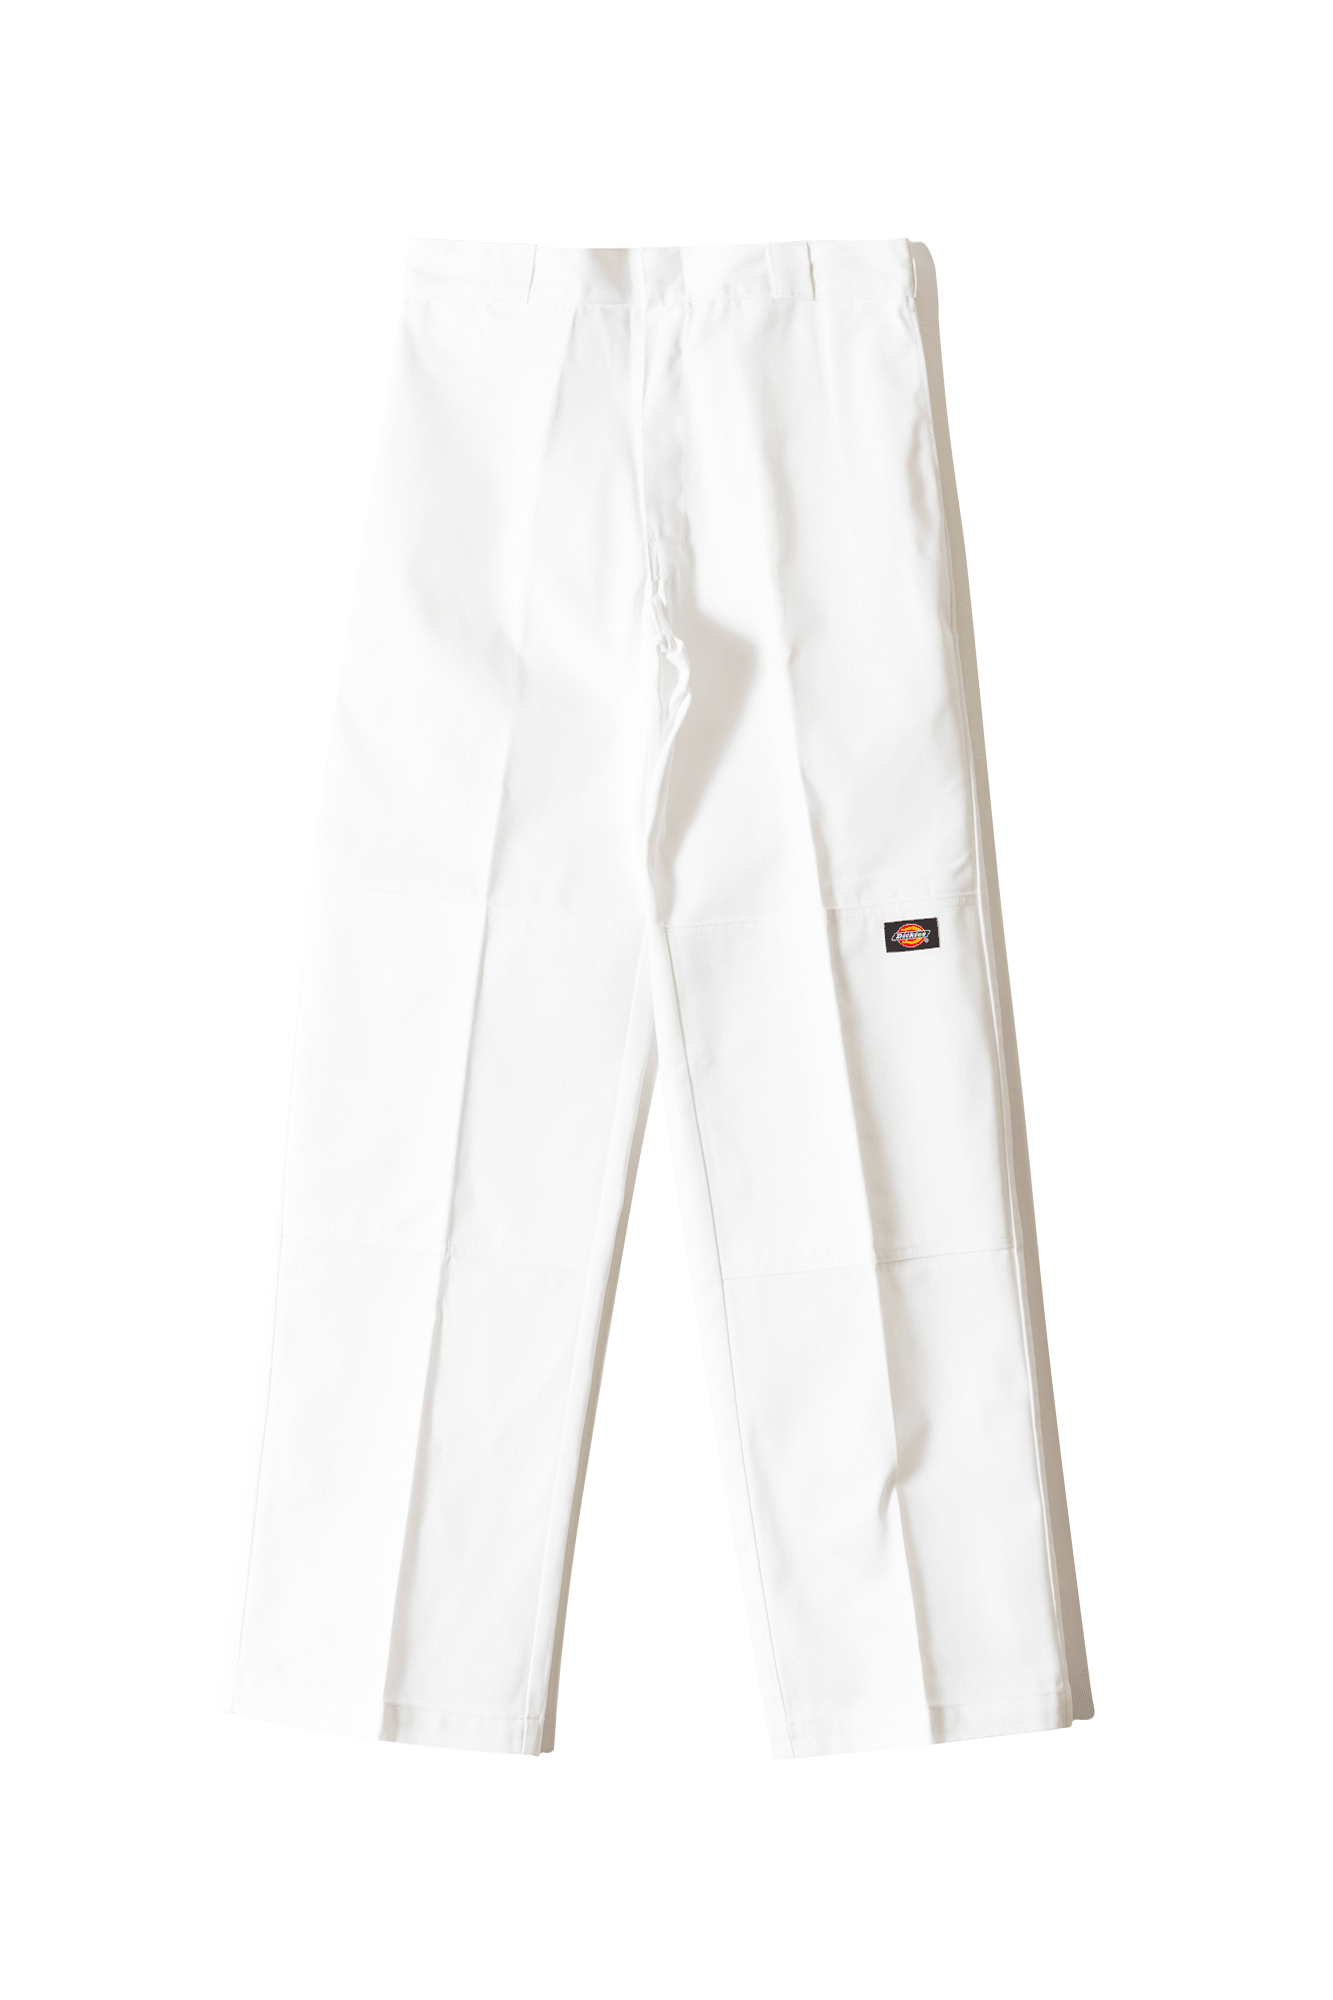 Dickies Pantaloni classici Double Knee Work Trousers Bianco 684190022#000#WH#30/32 - One Block Down